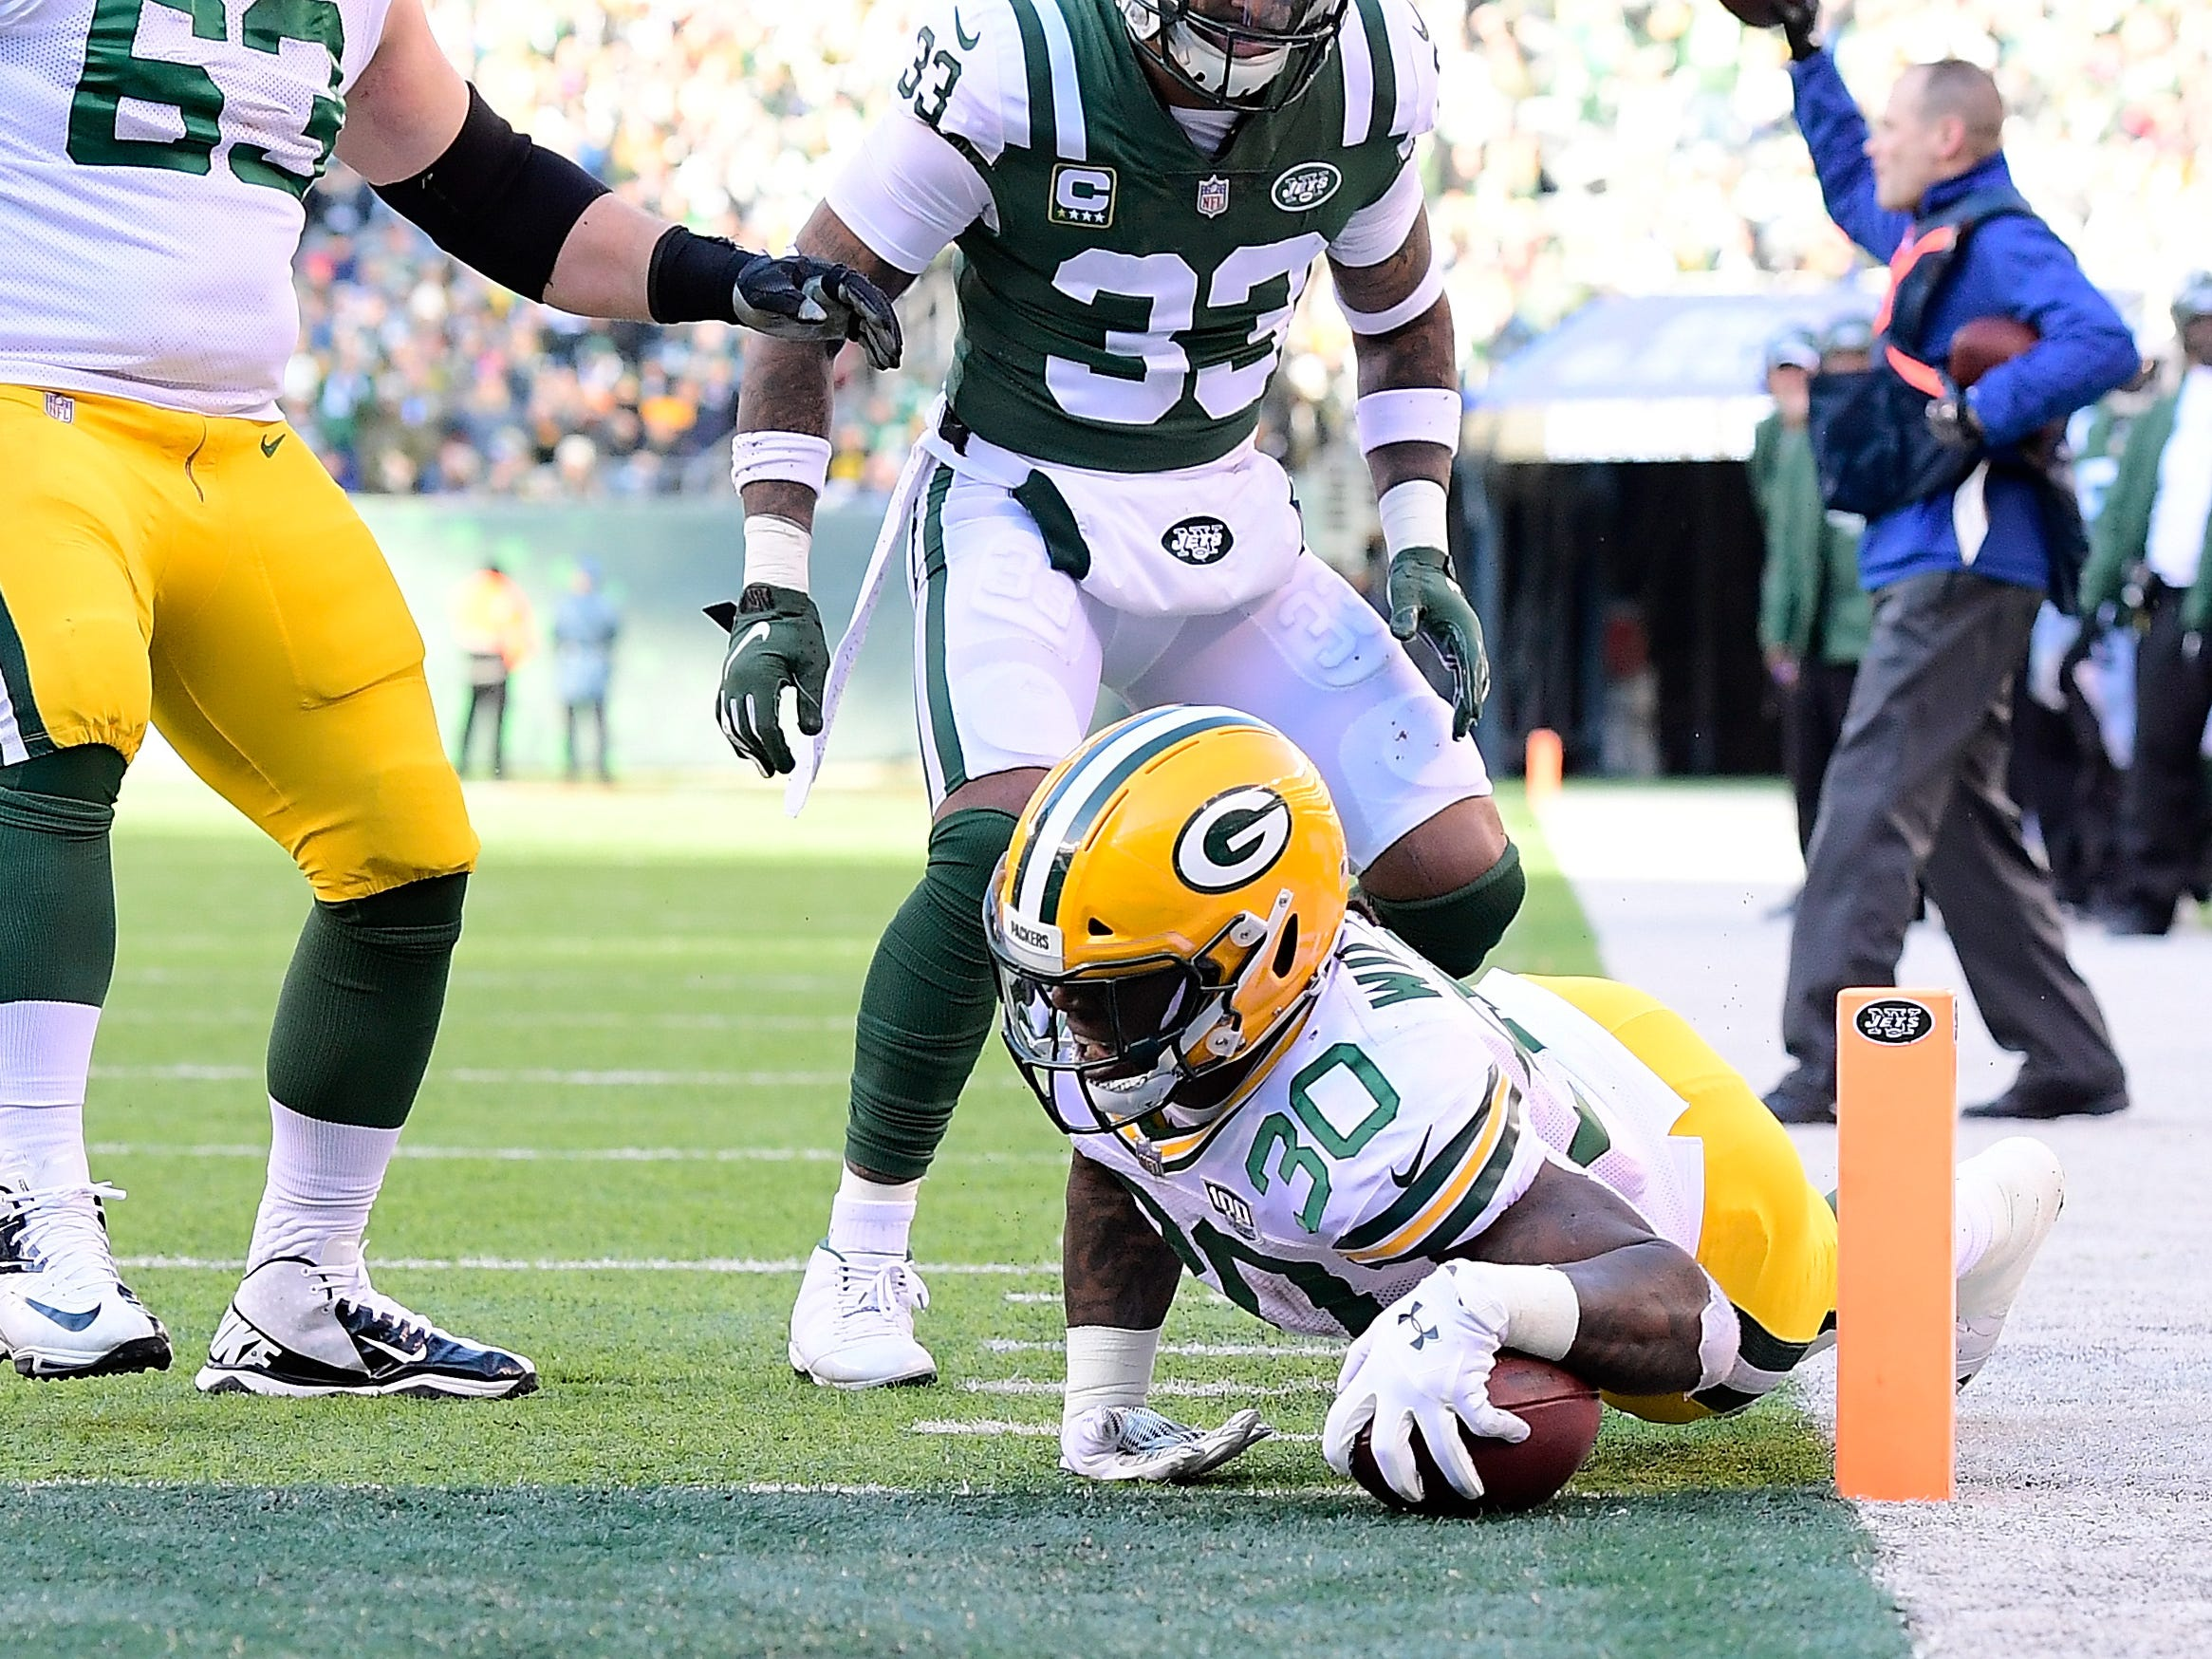 Jamaal Williams of the Green Bay Packers scores a touchdown against the New York Jets during the second quarter at MetLife Stadium on December 23, 2018 in East Rutherford, New Jersey.  (Photo by Steven Ryan/Getty Images)